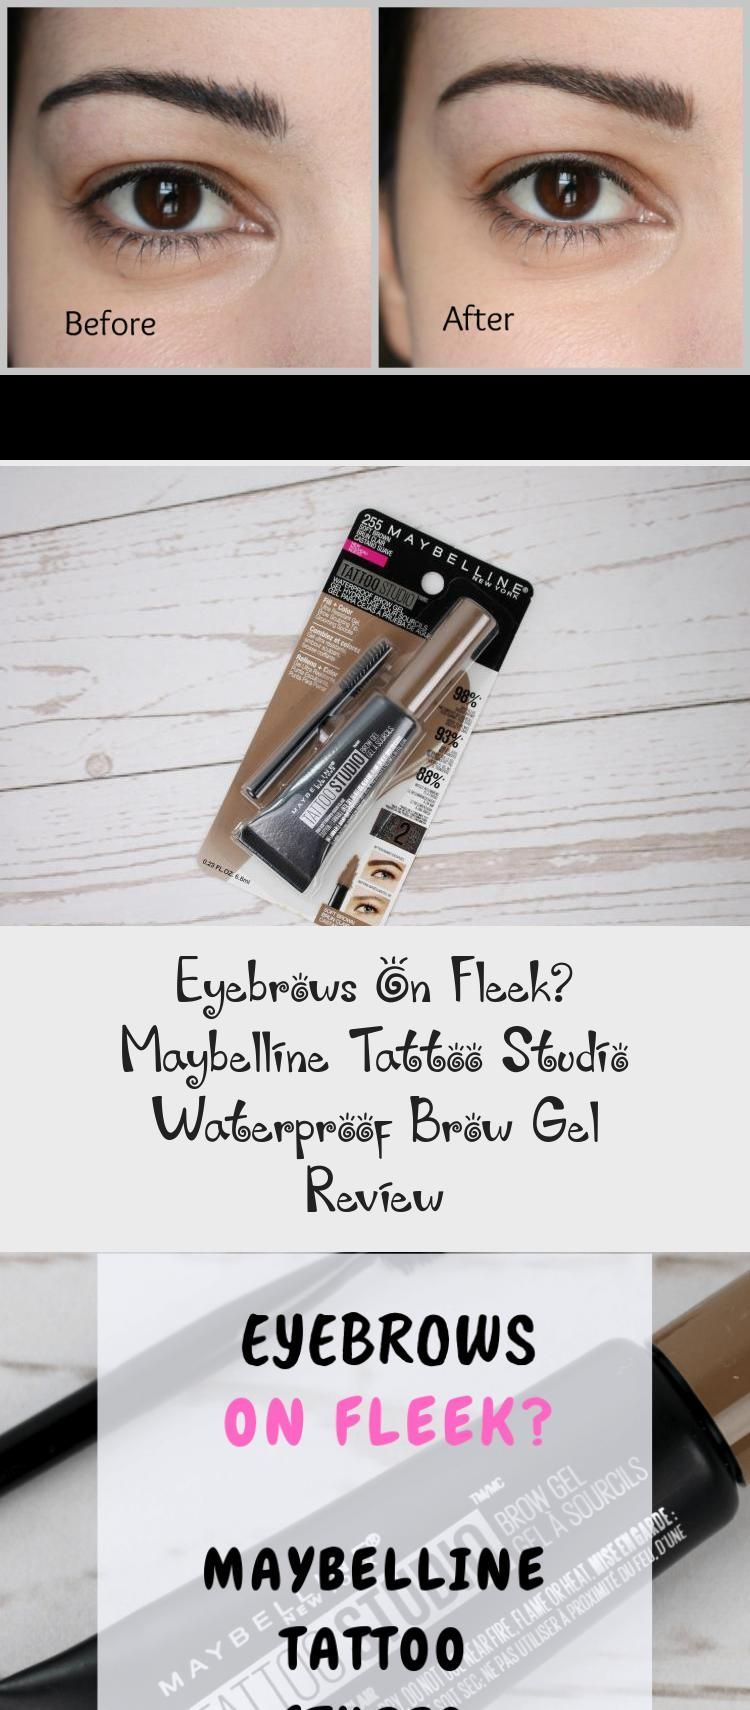 Eyebrows On Fleek? Maybelline Tattoo Studio Waterproof